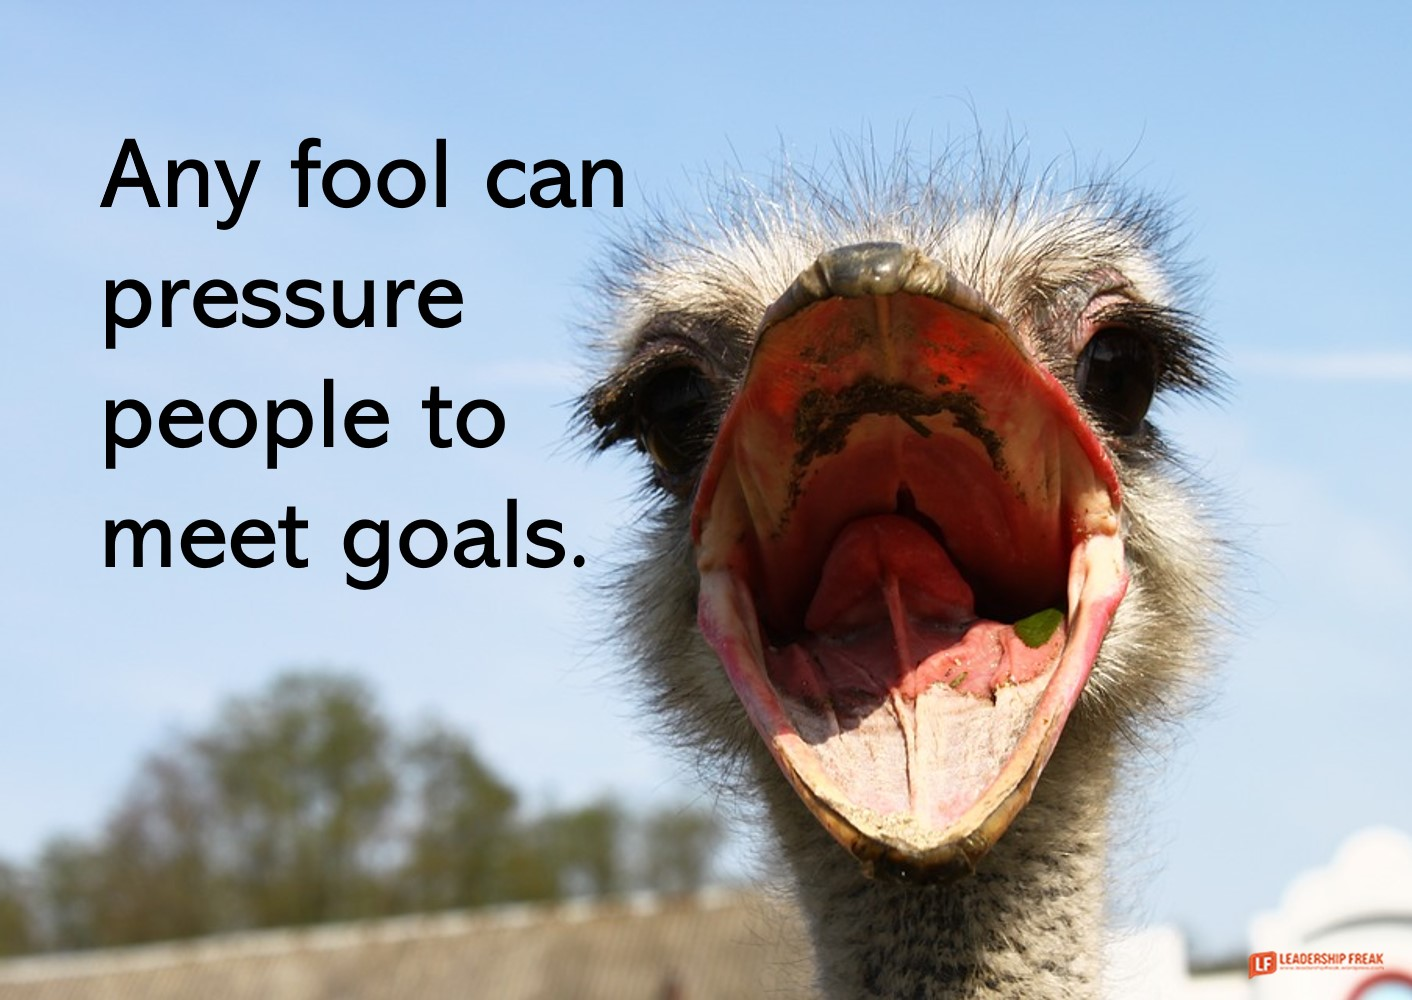 Ostrich mouth  Any fool can pressure people to meet goals.